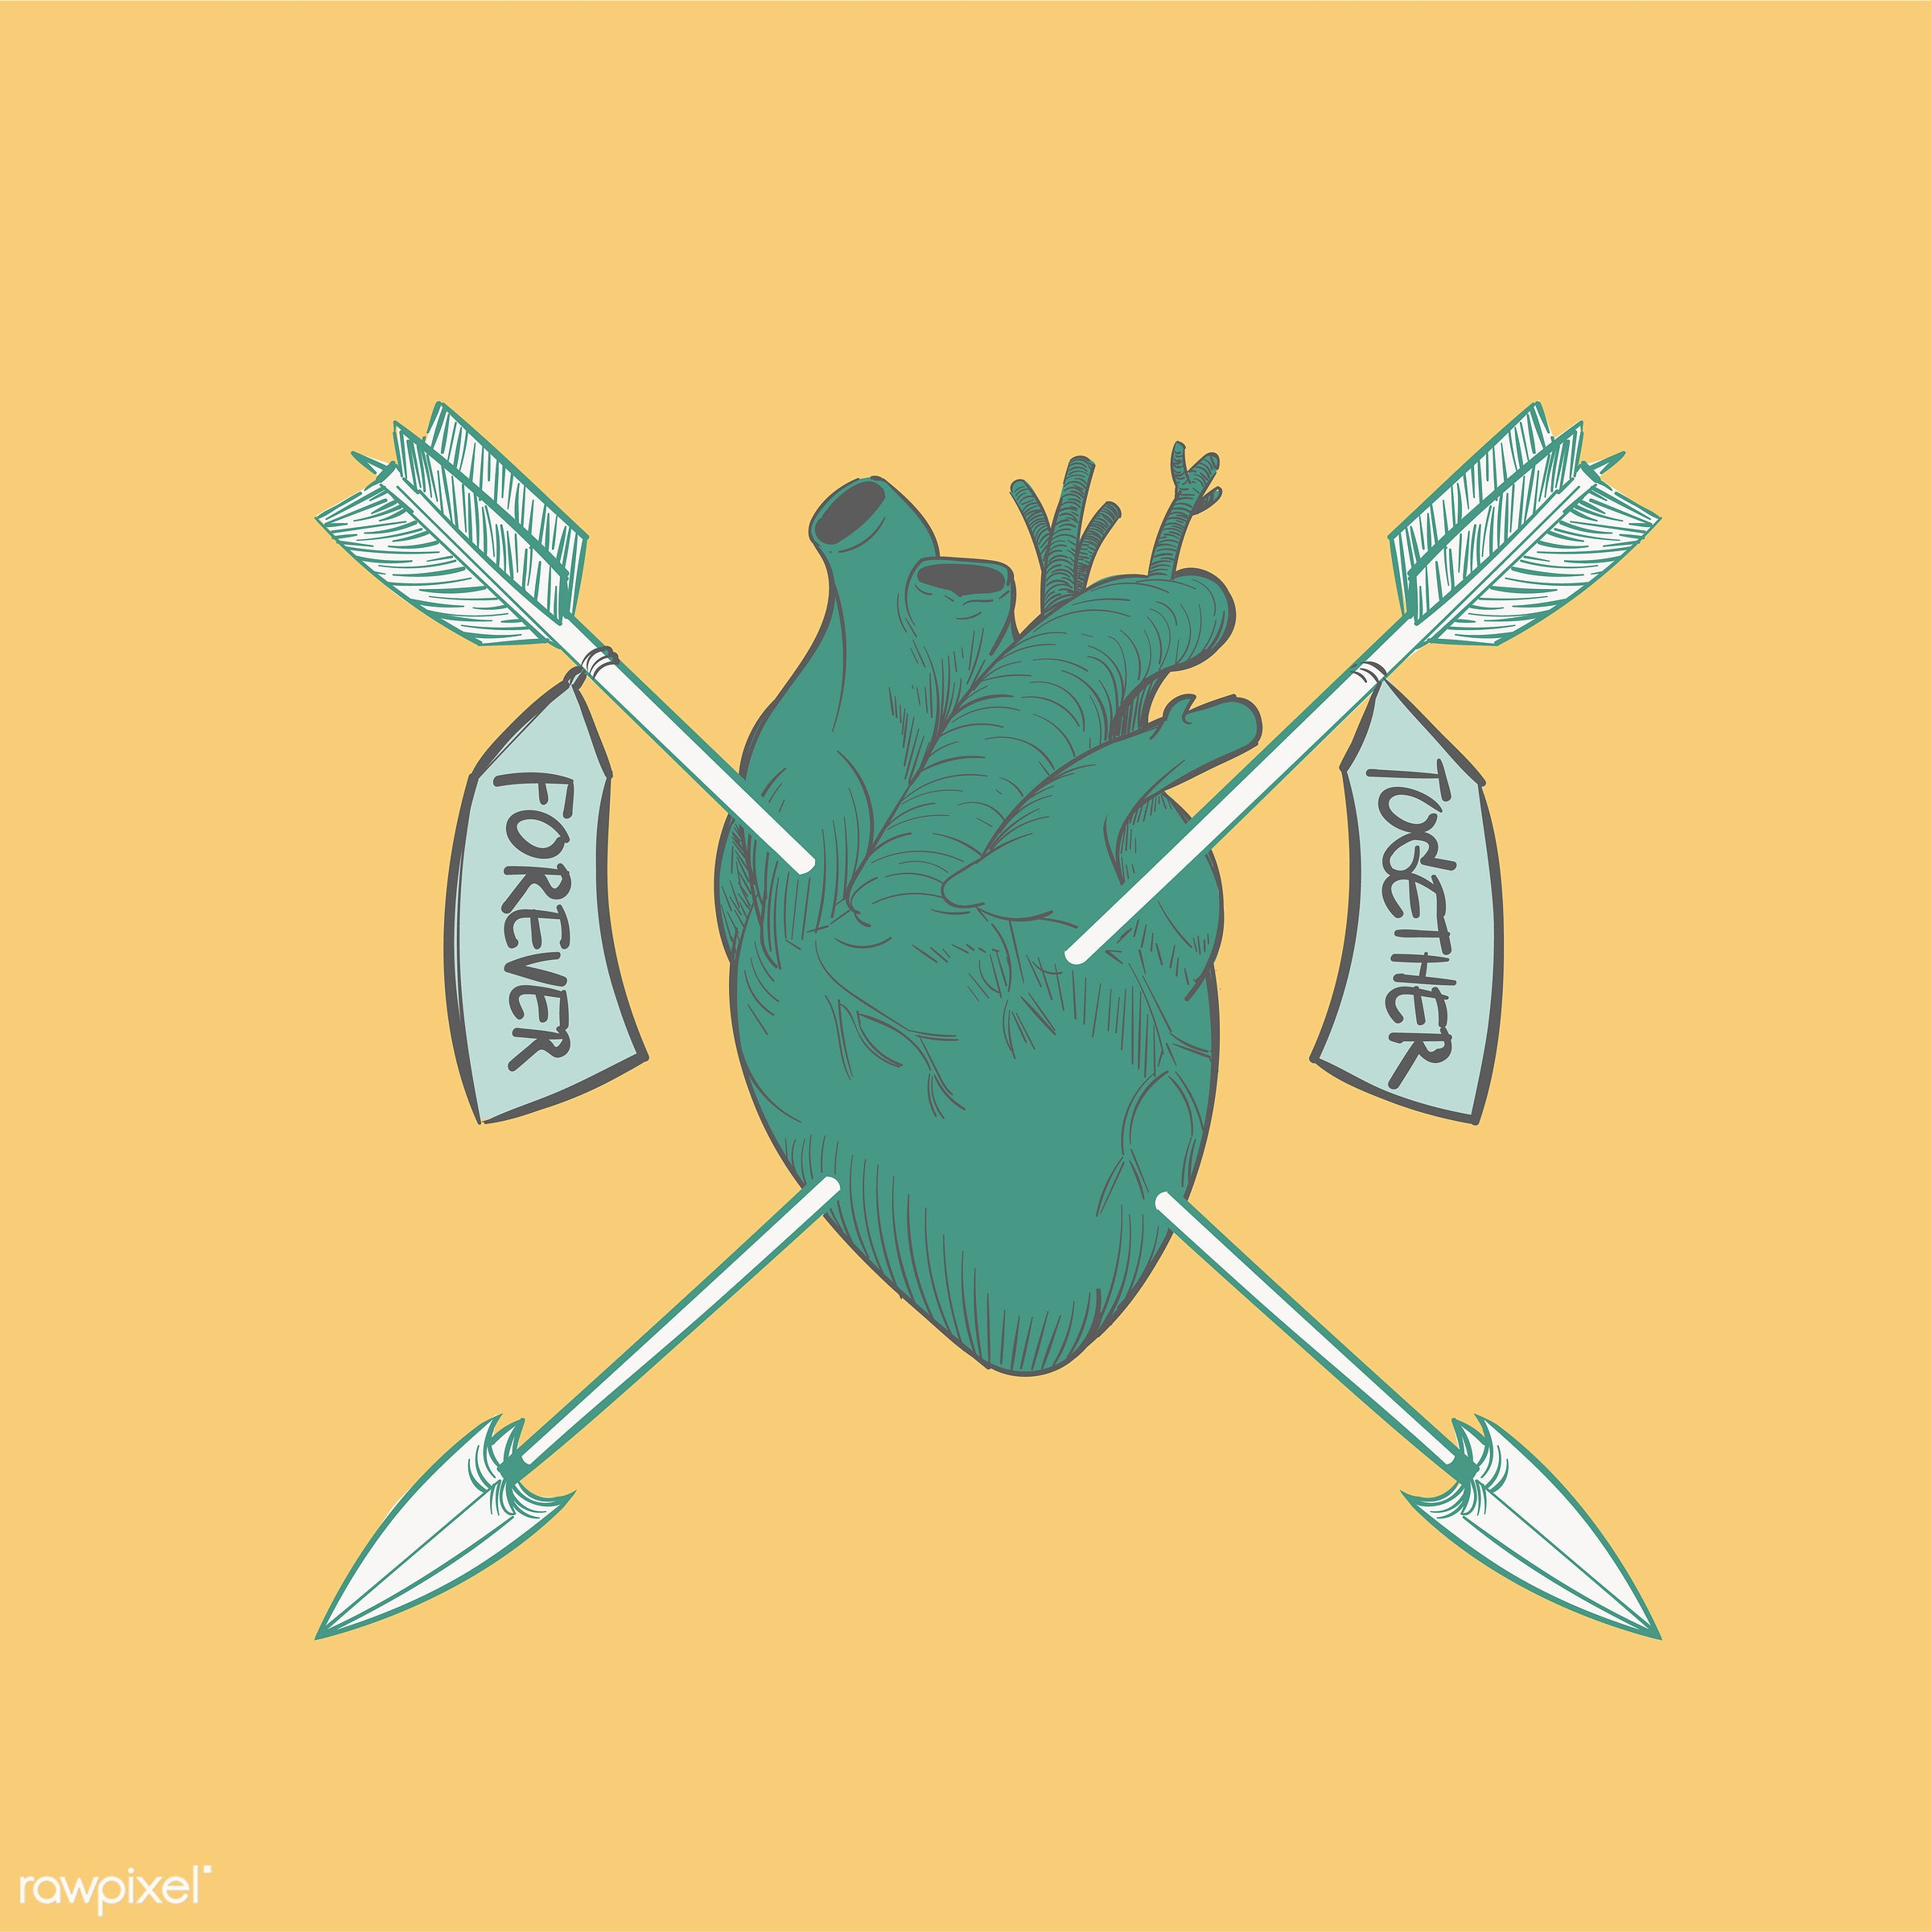 Hand drawing illustration of love concept - arrow, artwork, cares, collection, couple, design, draw, drawing, drawn, emotion...